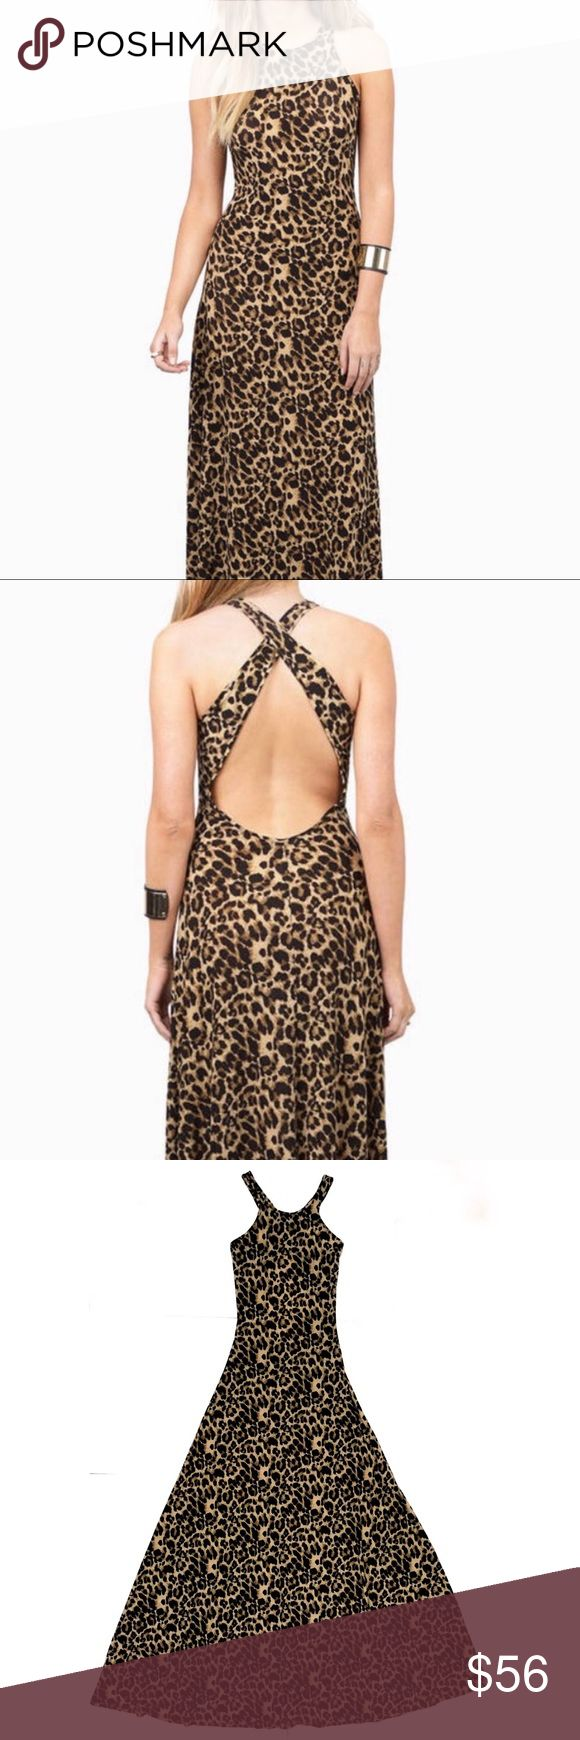 """Tobi Cheetah / Animal Print Crisscross Maxi Dress Cheetah print maxi dress by Tobi. This dress has great slinky, medium weight fabric that flares out at the bottom. Has awesome movement and is soft & comfy. Looks amazing on!  •Never worn, new •95% poly, 5% spandex •Size XS •Length is 62""""  🎁30% off bundles of 2+! ♥️Find designer items in my closet Tobi Dresses Maxi"""